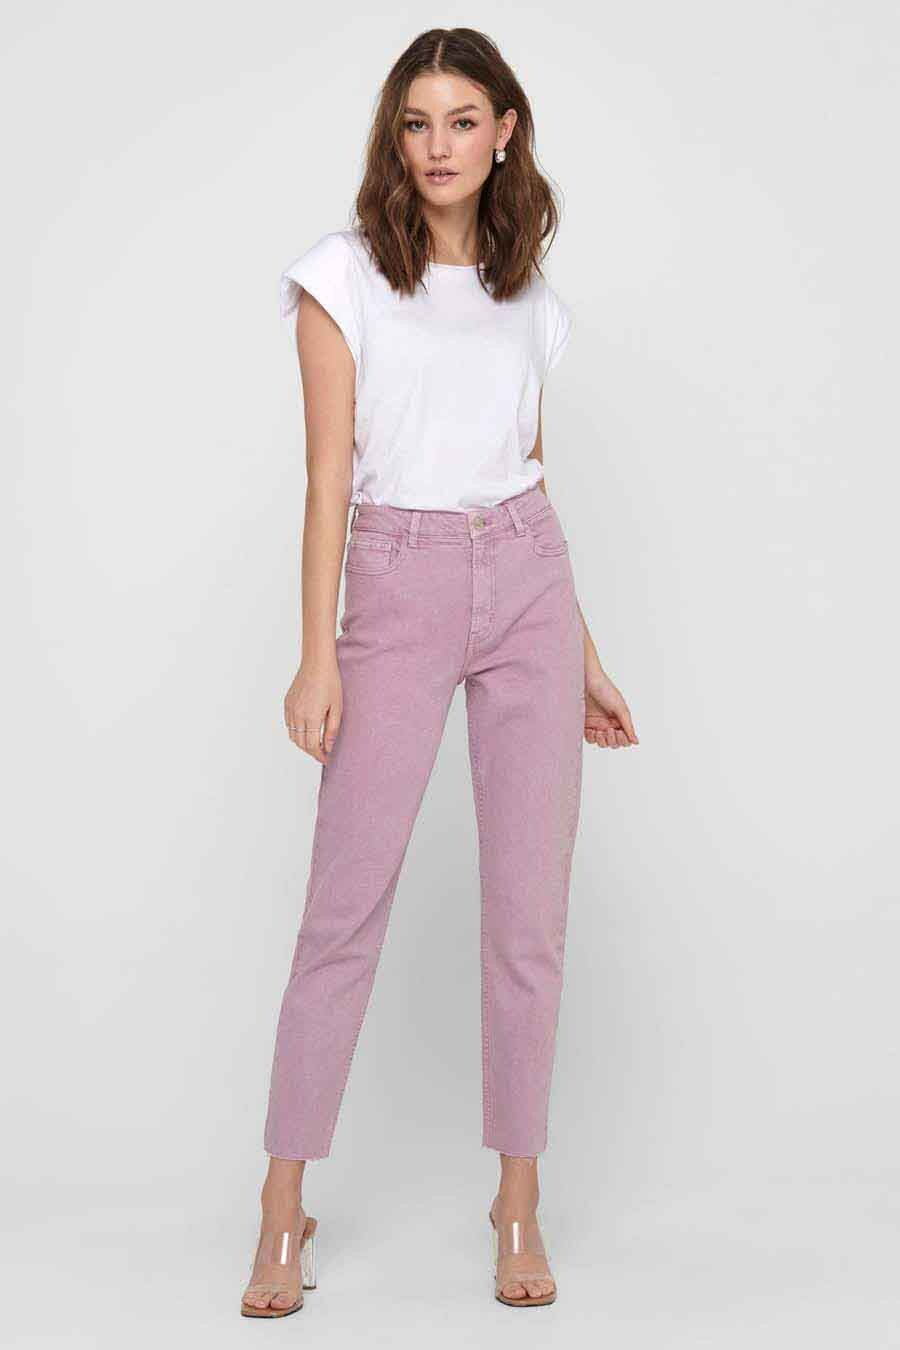 ONLY® Broek, Straight Jeans, Dames, Maat: 25x32/26x32/29x30/30x30/31x30/32x30